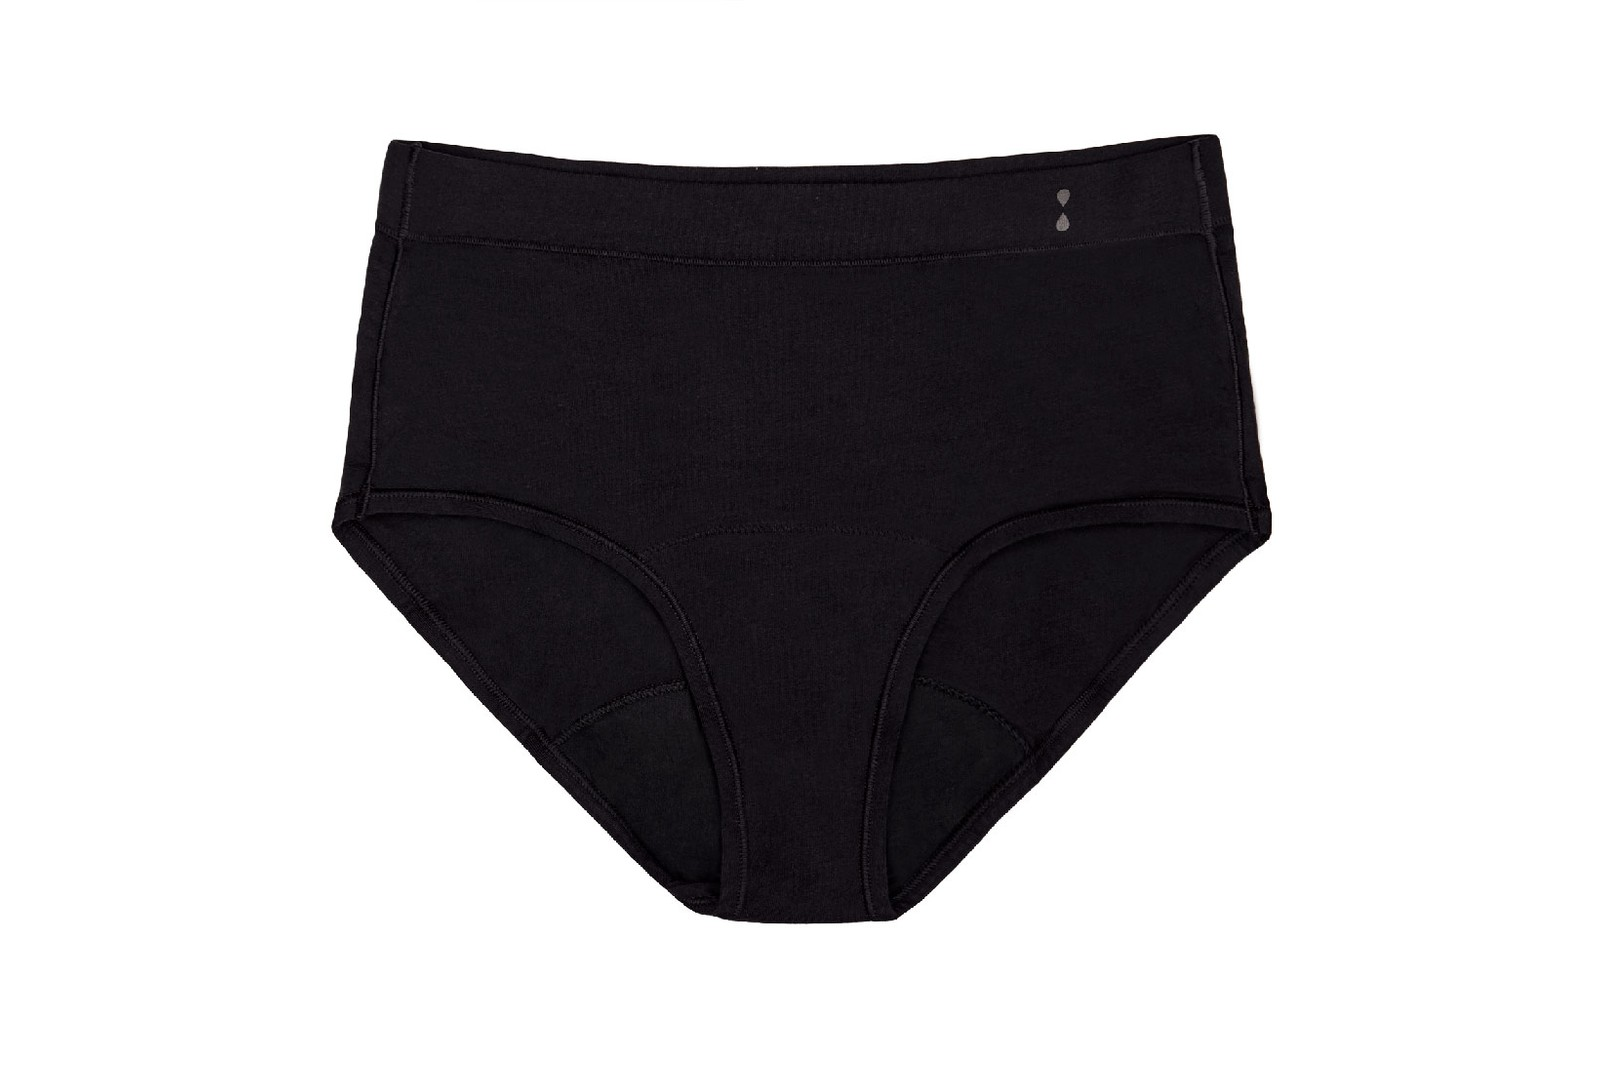 thinx for all period underwear brief bikini high waist collection inclusive sizes black cray colorway